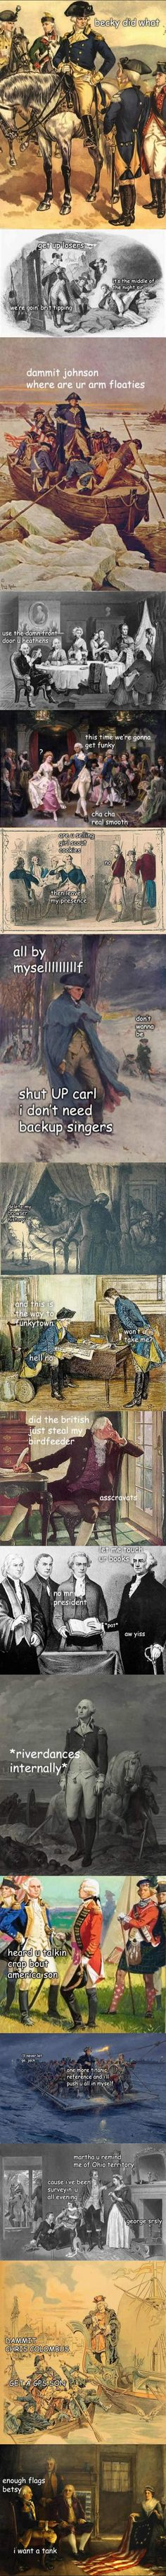 Adventures with George Washington. lol so funny Funny Quotes, Funny Memes, Jokes, Memes Humor, Funny Videos, History Memes, Funny History, History Major, I Love To Laugh